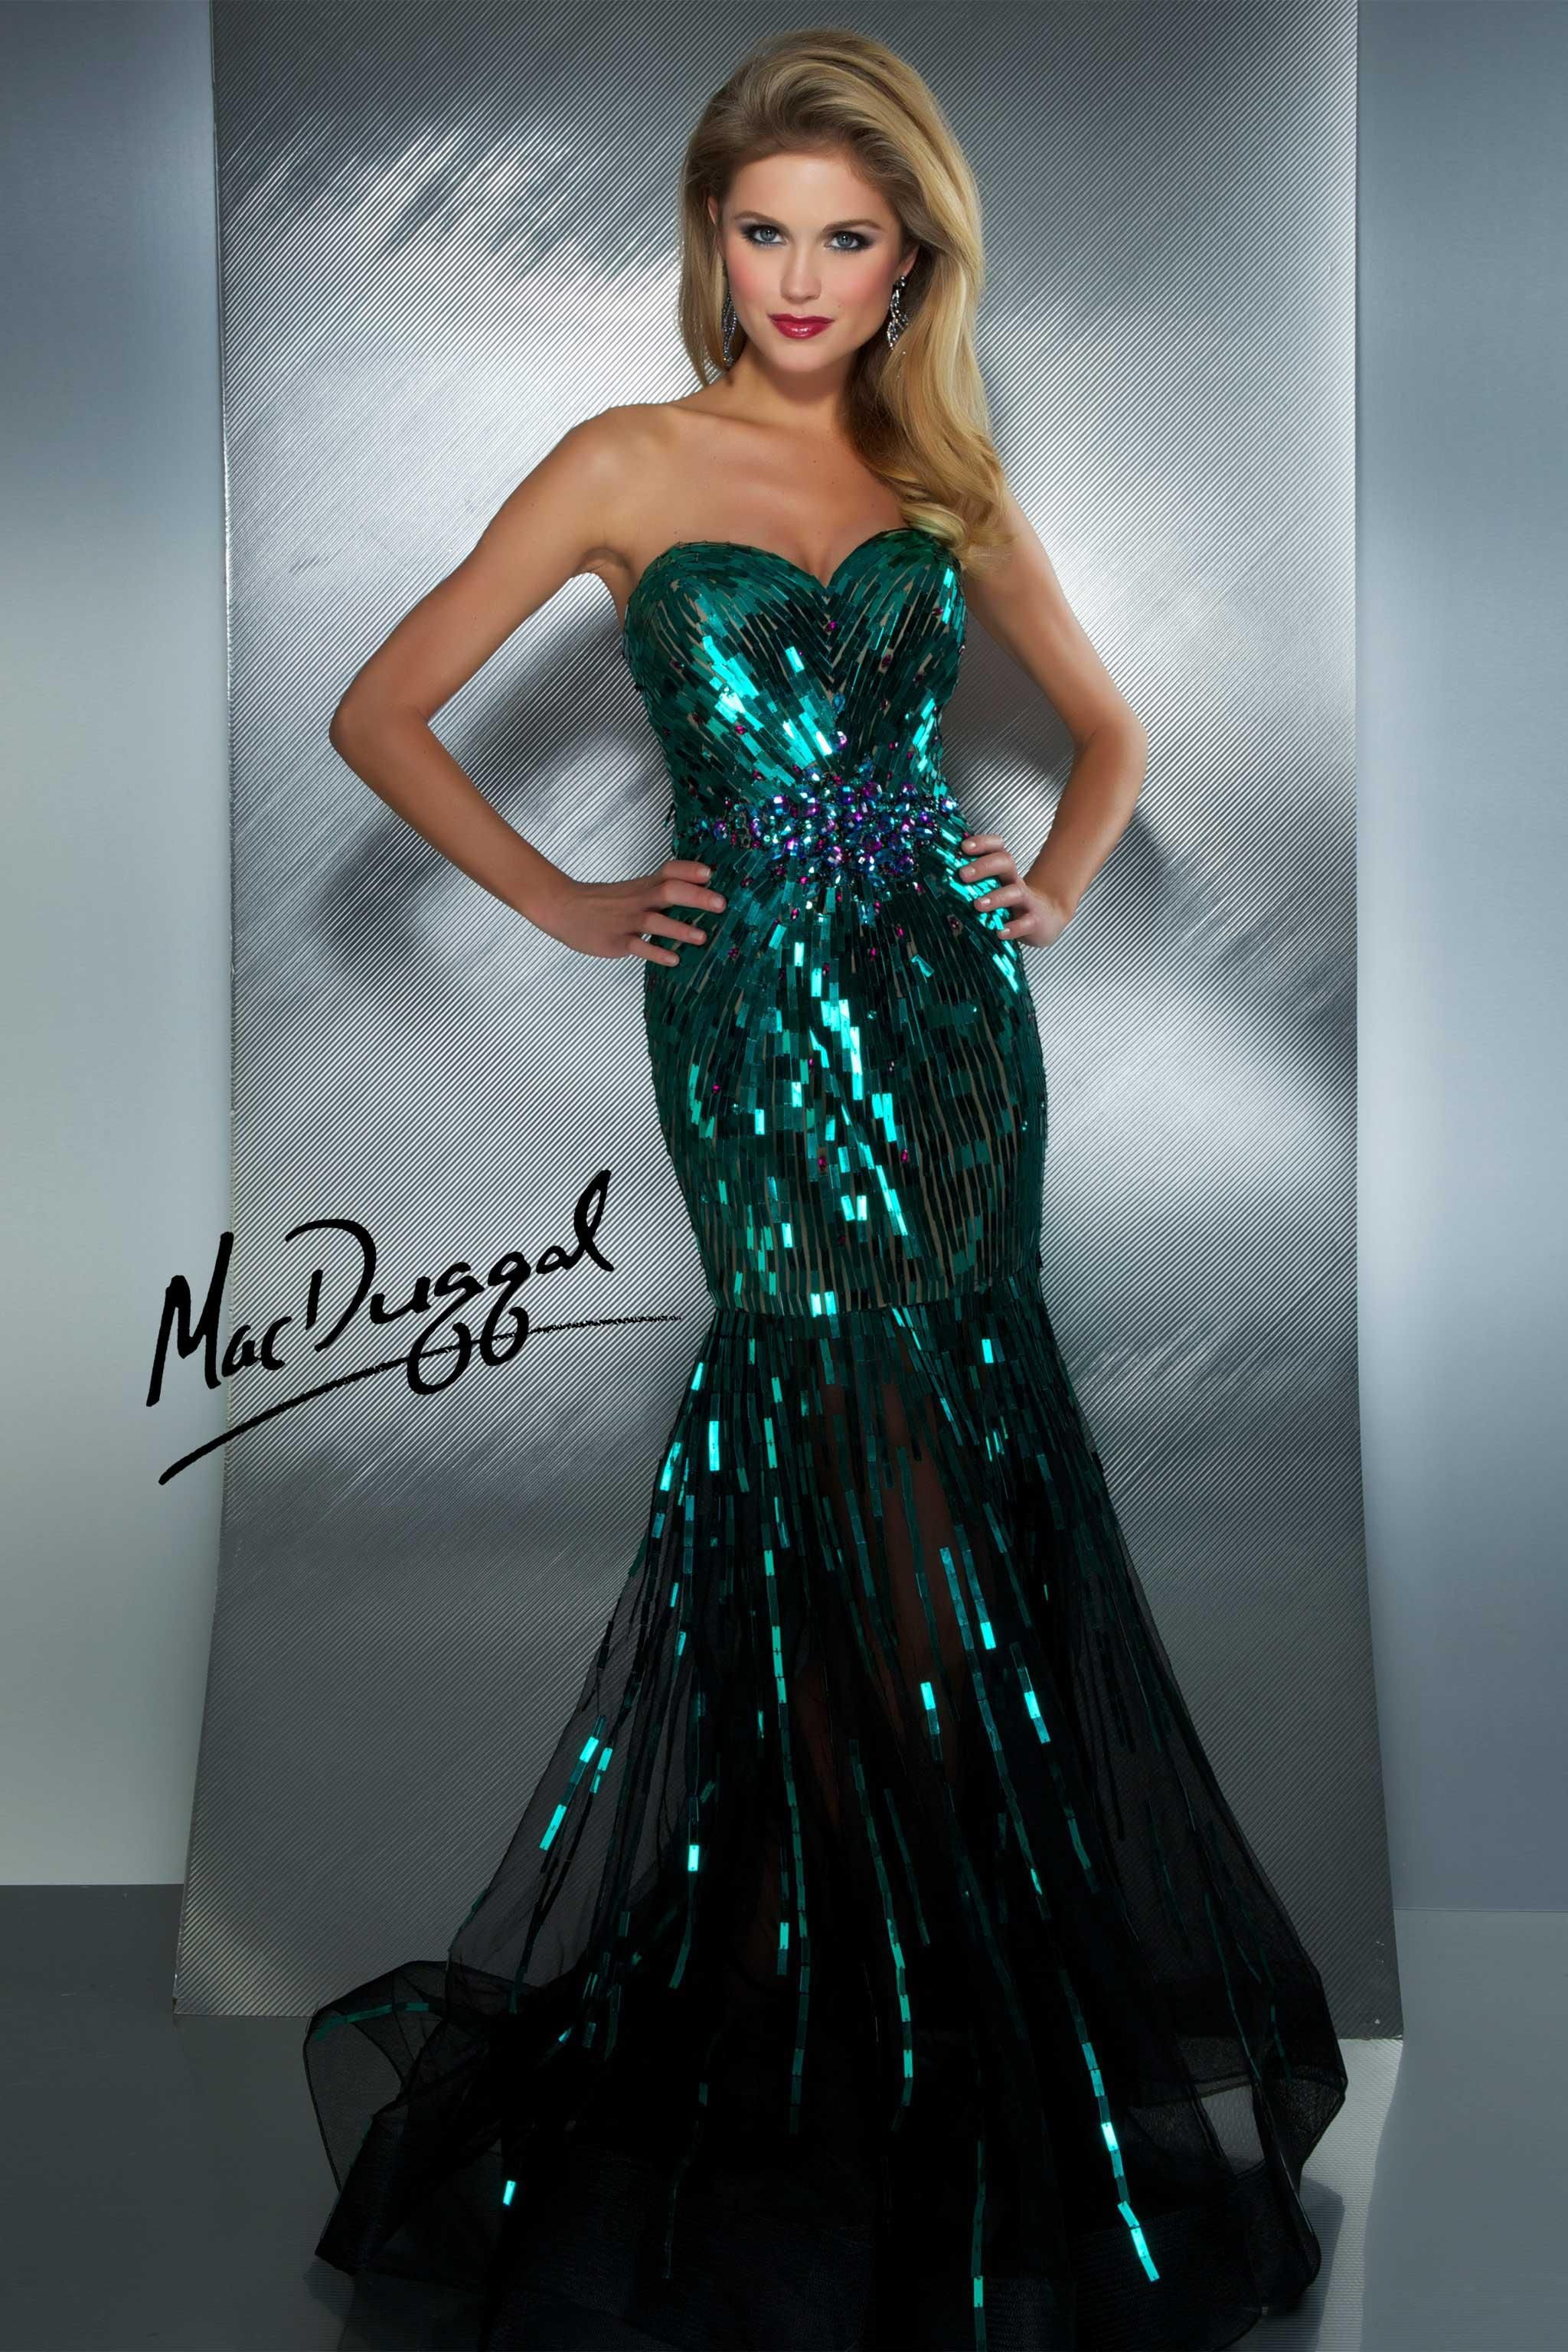 be8a364a21 Teal Metallic Sequin Mermaid Prom Dress maybe a diff color